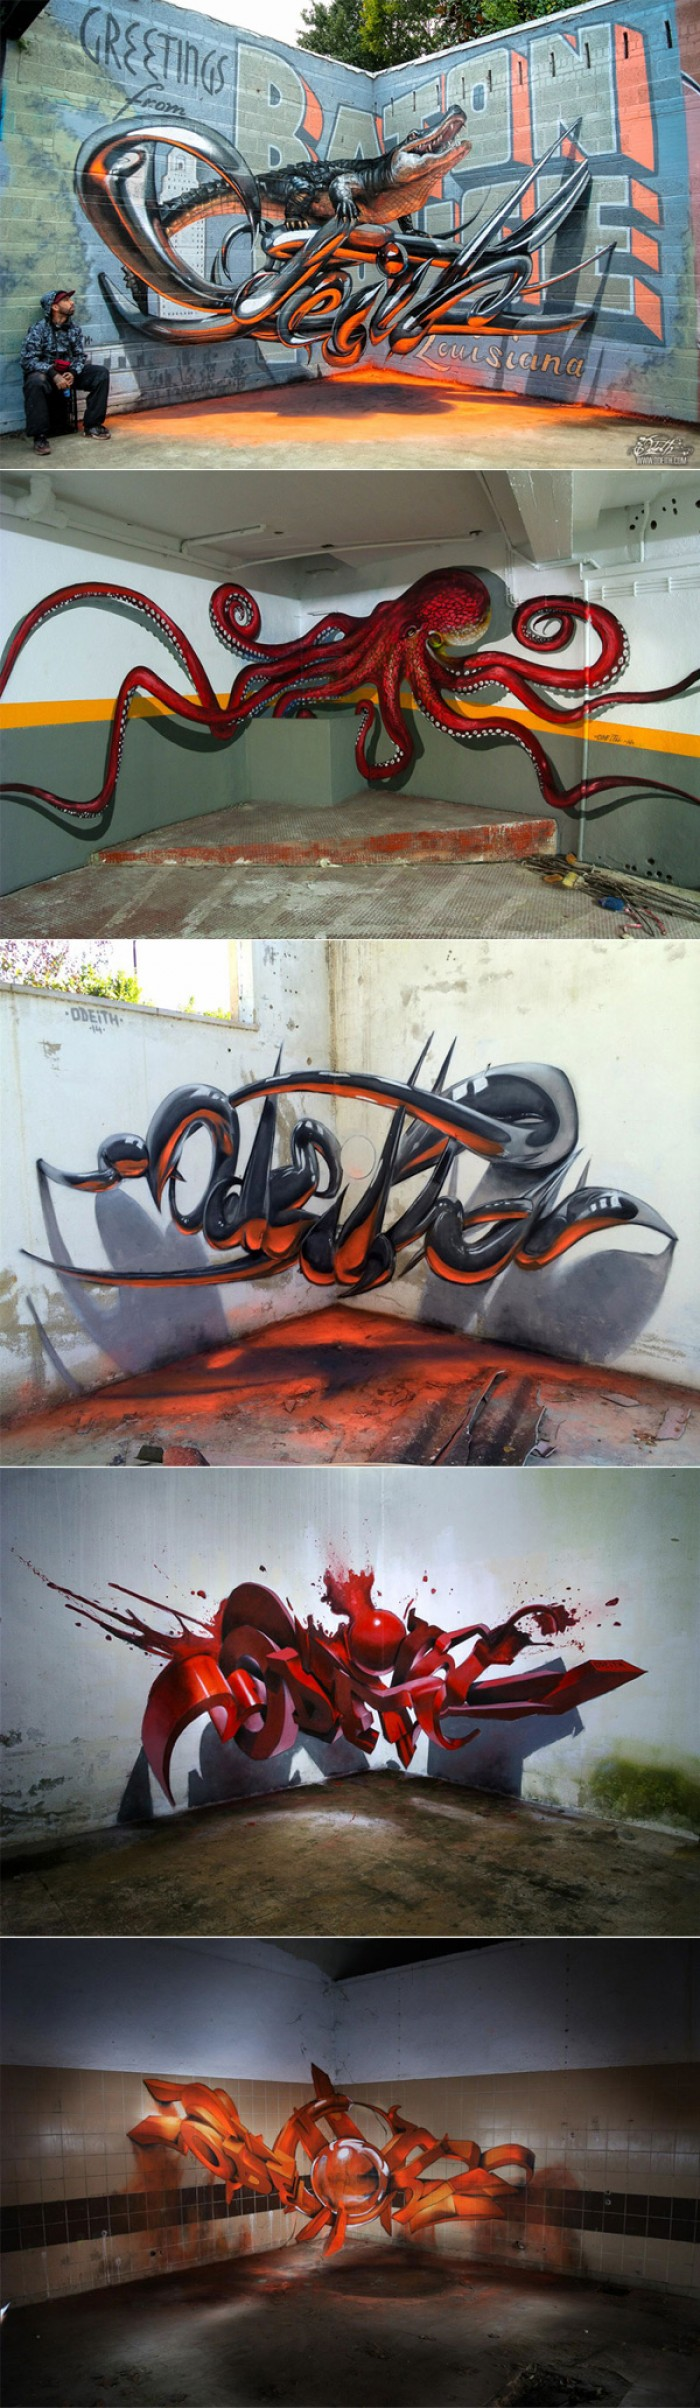 Odeith - 3D street artist creates Grafitti that floats in the air